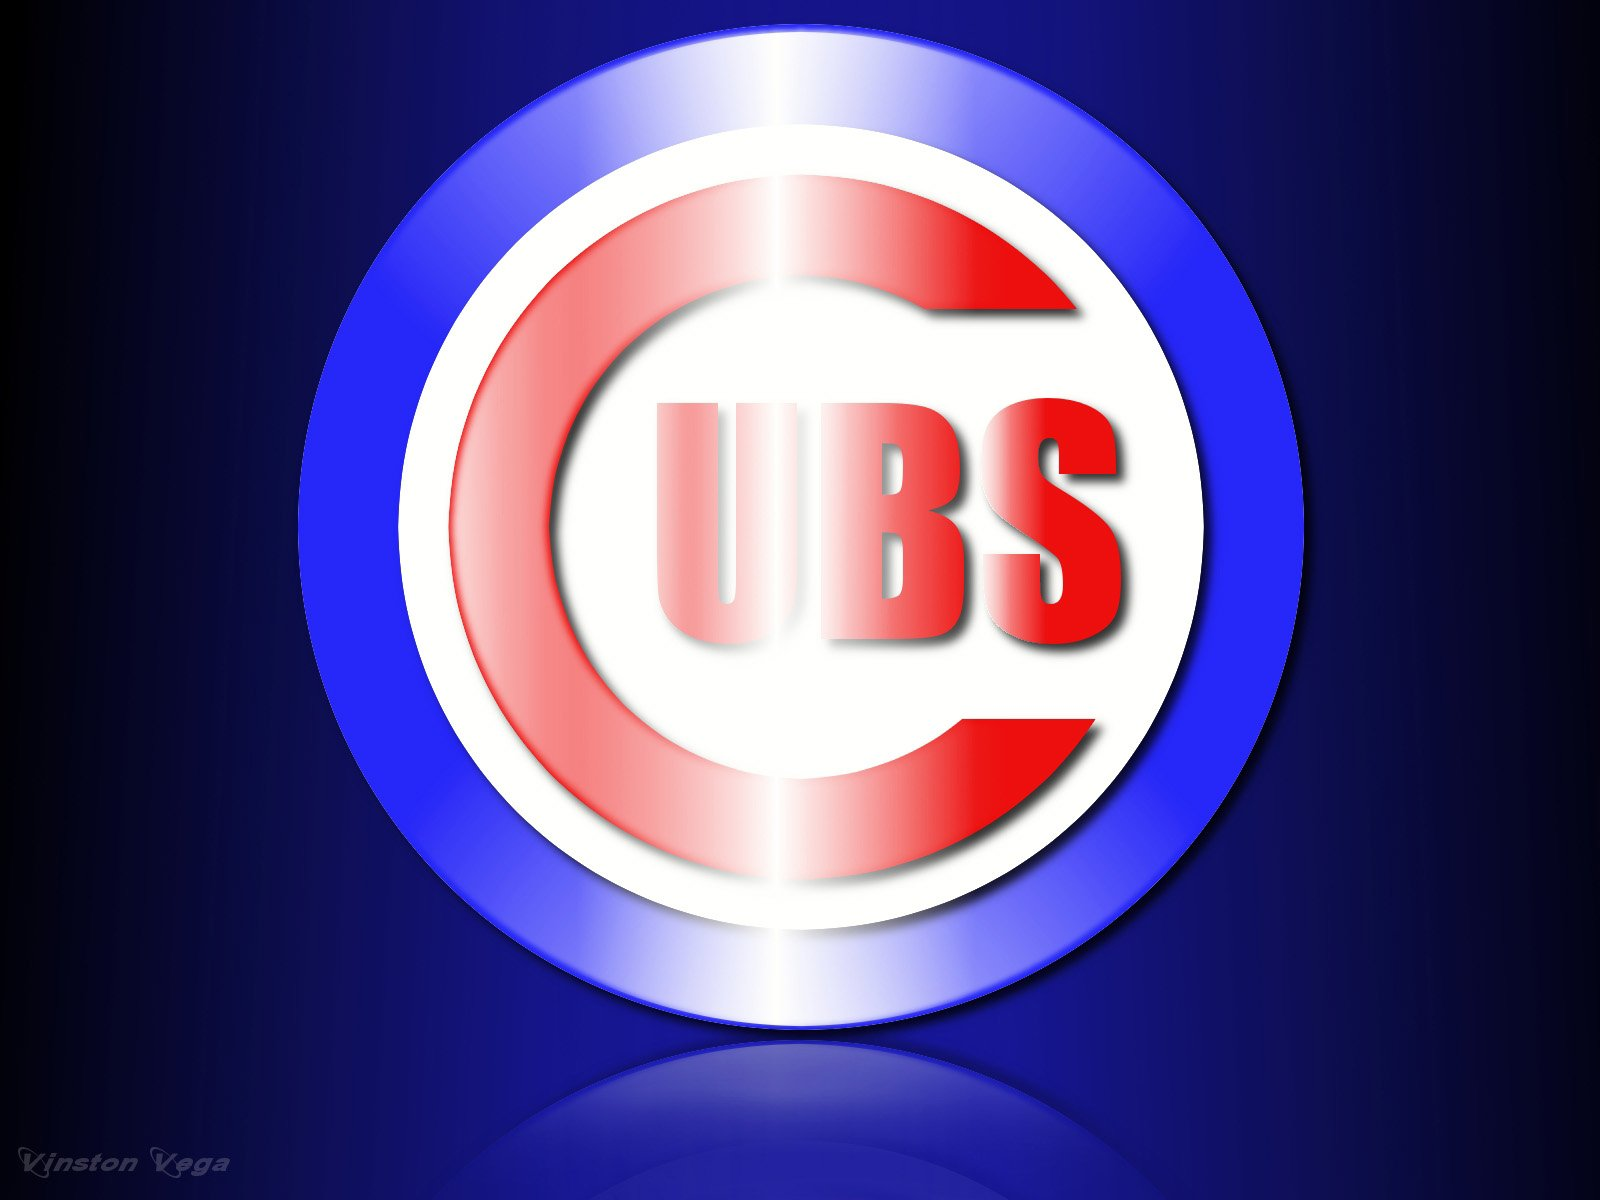 Chicago Cubs o incluso si lo prefieres vdeos de Chicago Cubs 1600x1200